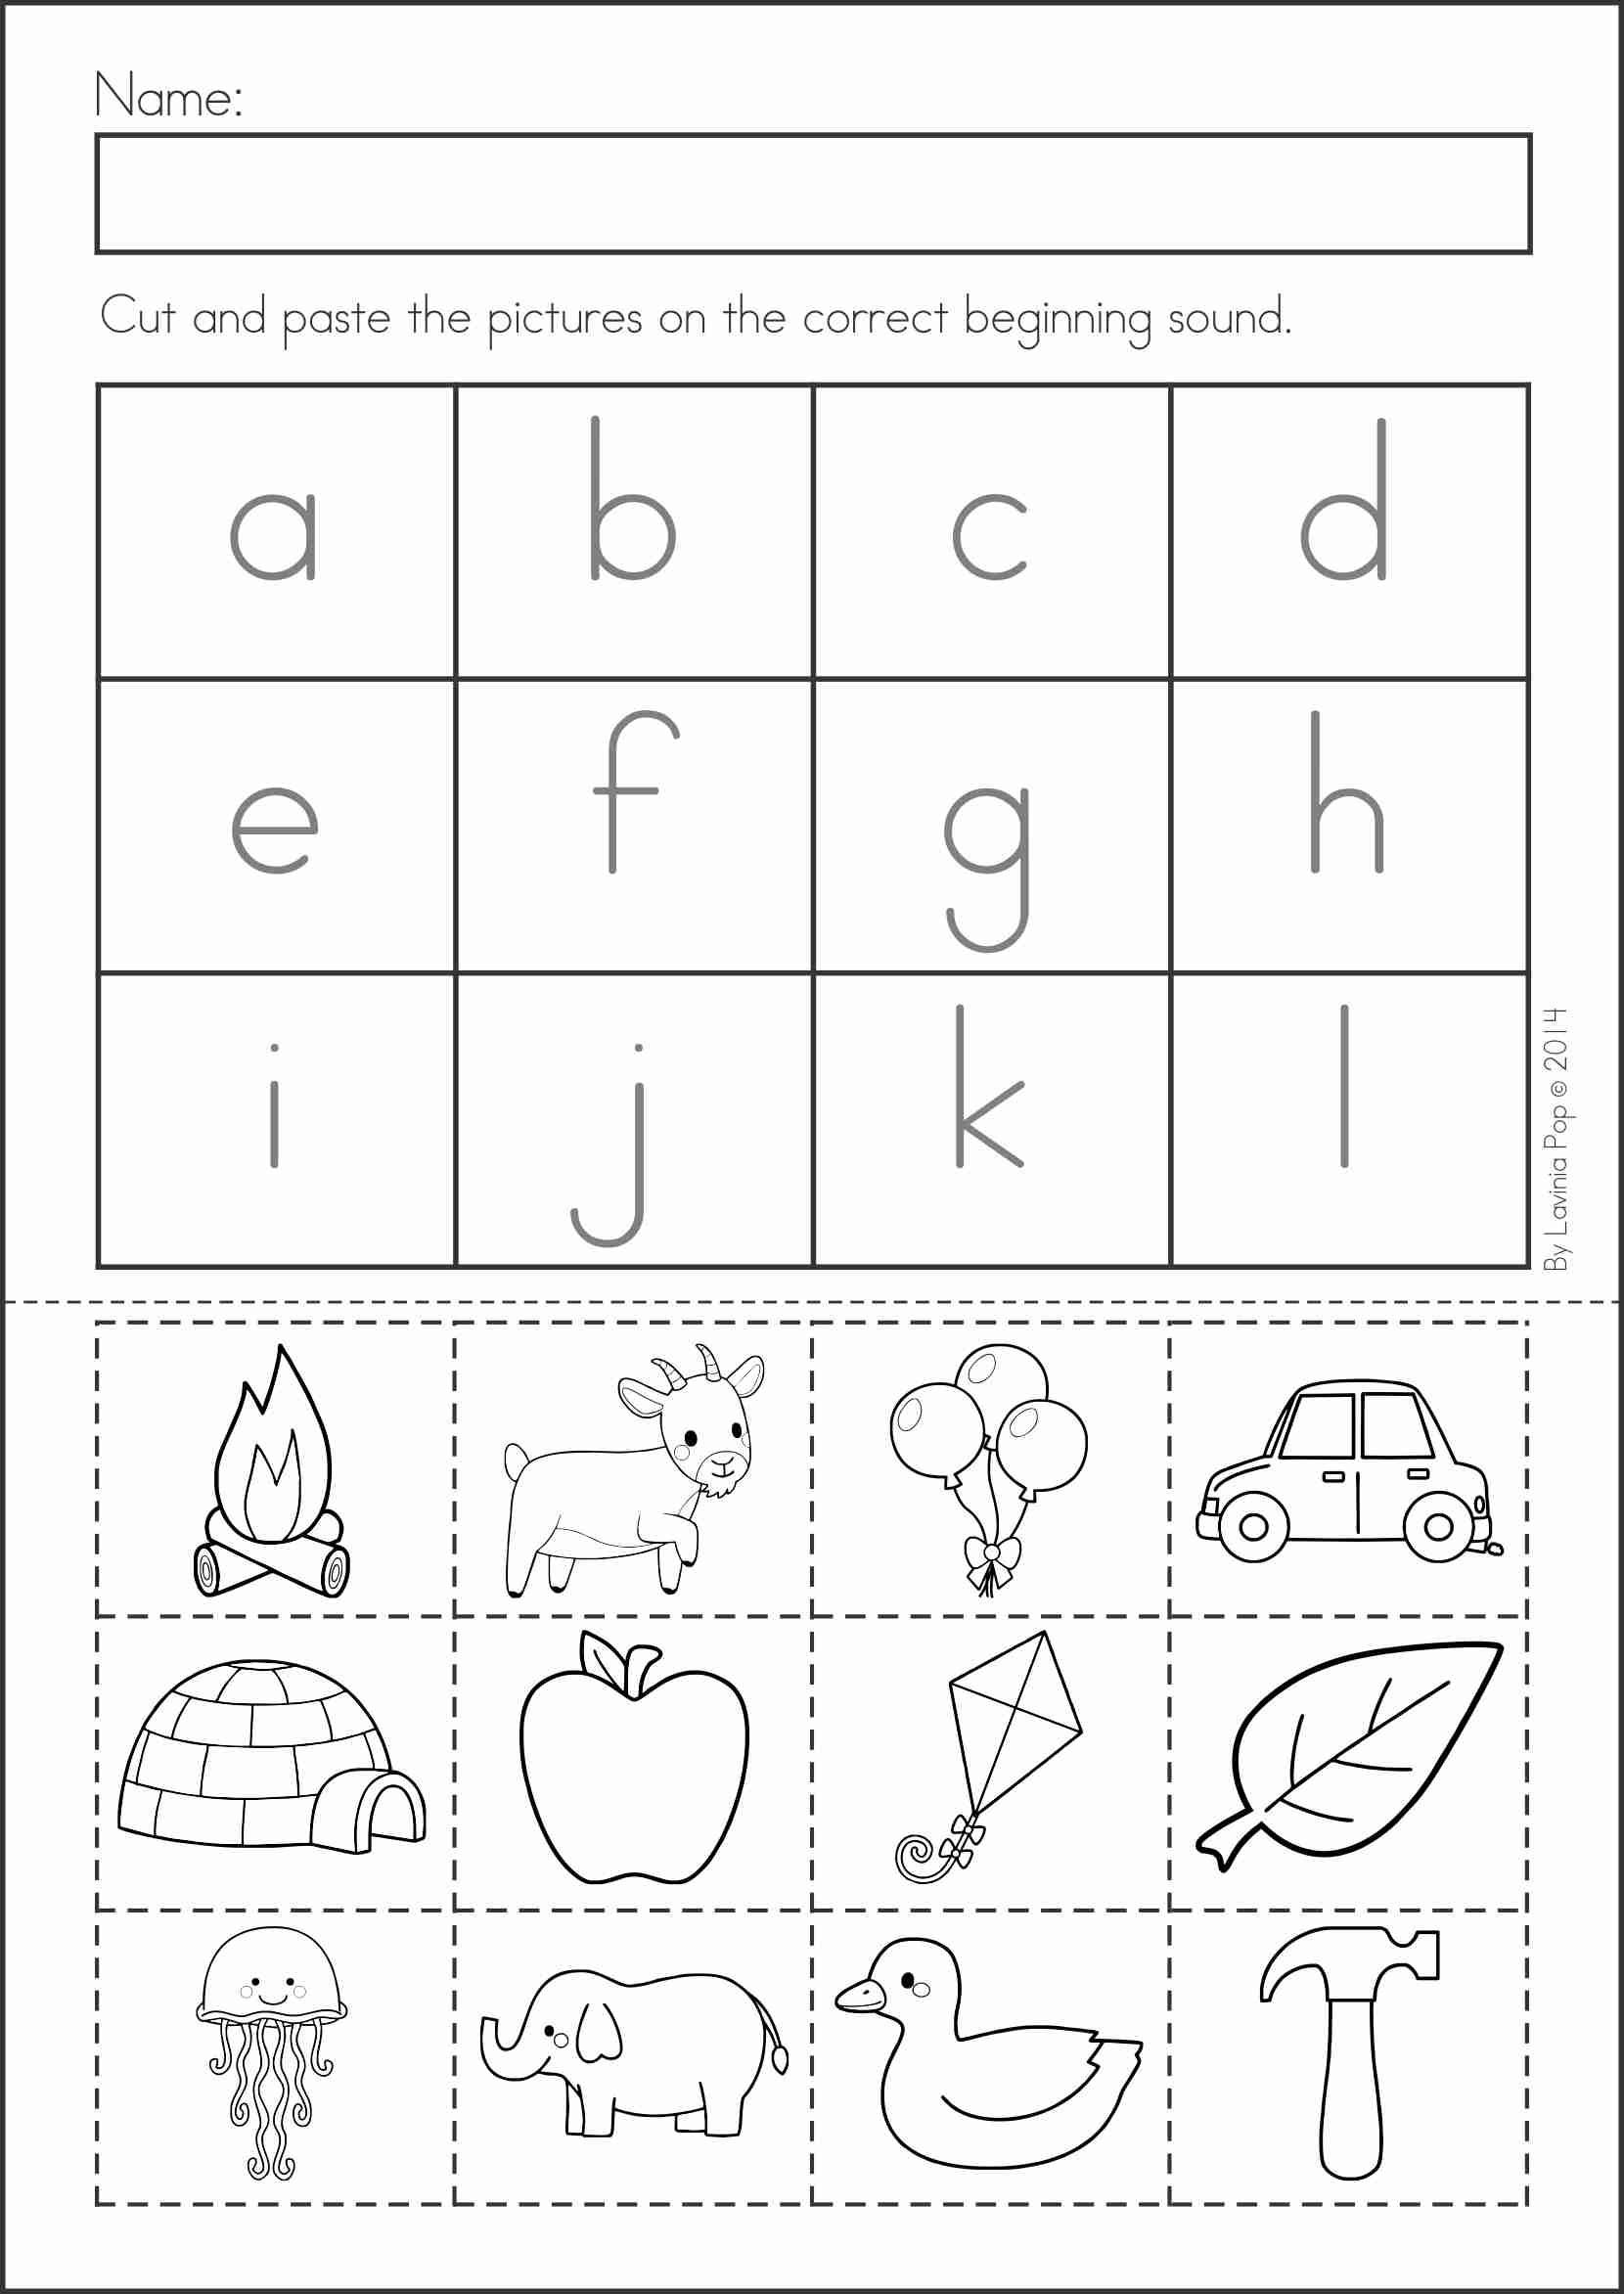 Uncategorized Cut And Paste Worksheets summer review school reviews and literacy kindergarten math worksheets activities 104 pages a page from